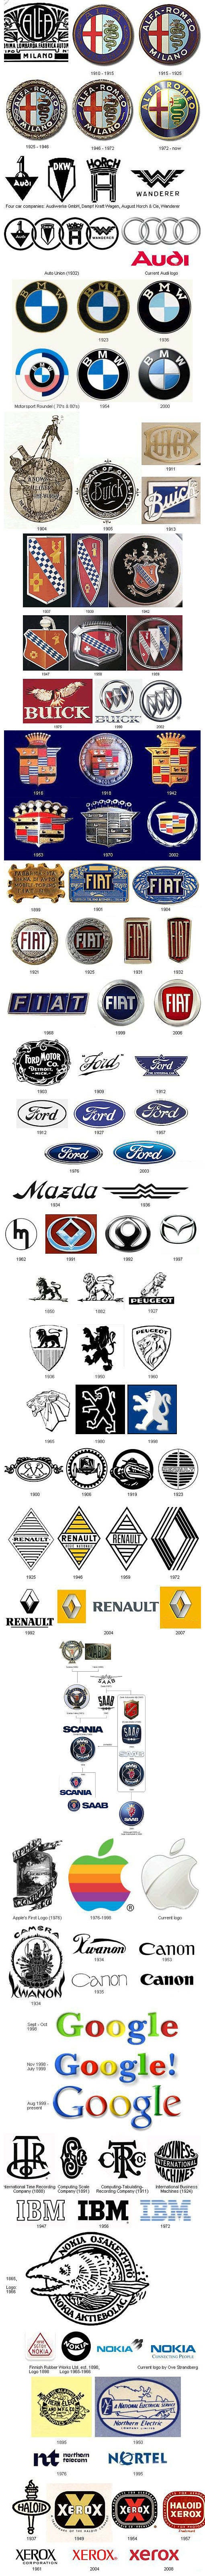 logos over time